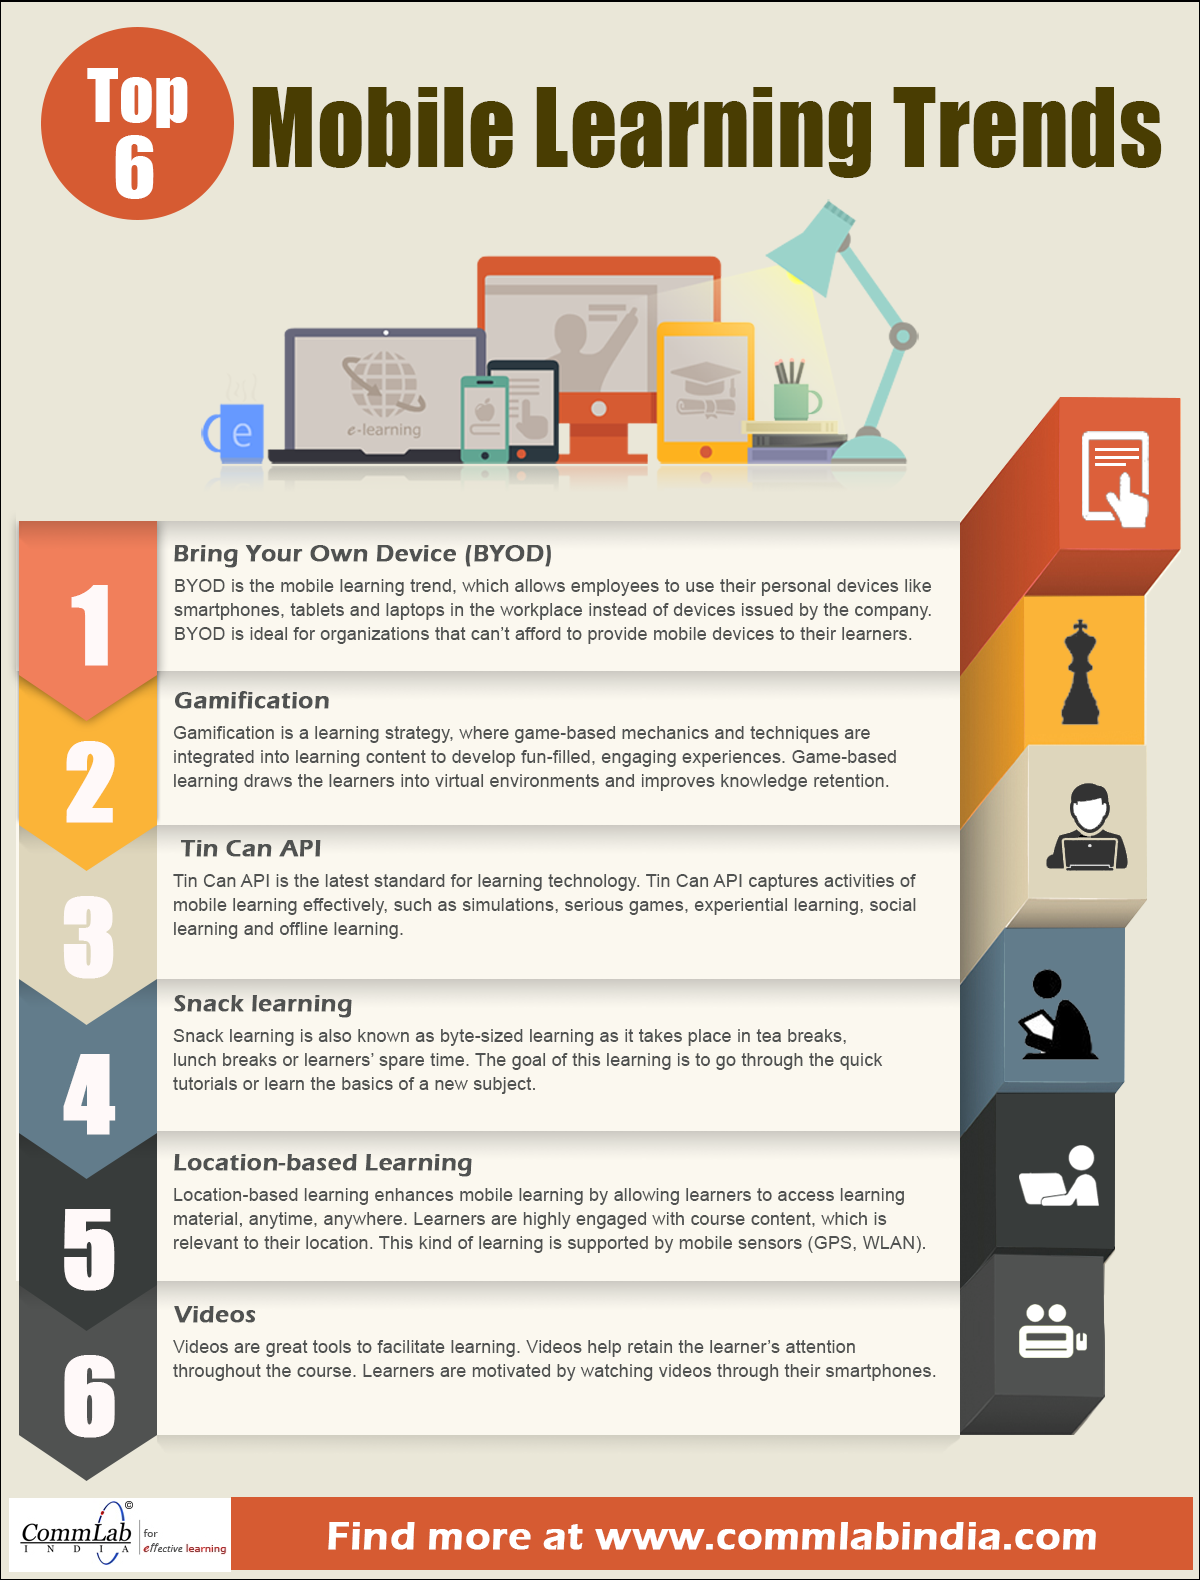 Top 6 Mobile Learning Trends – An Infographic